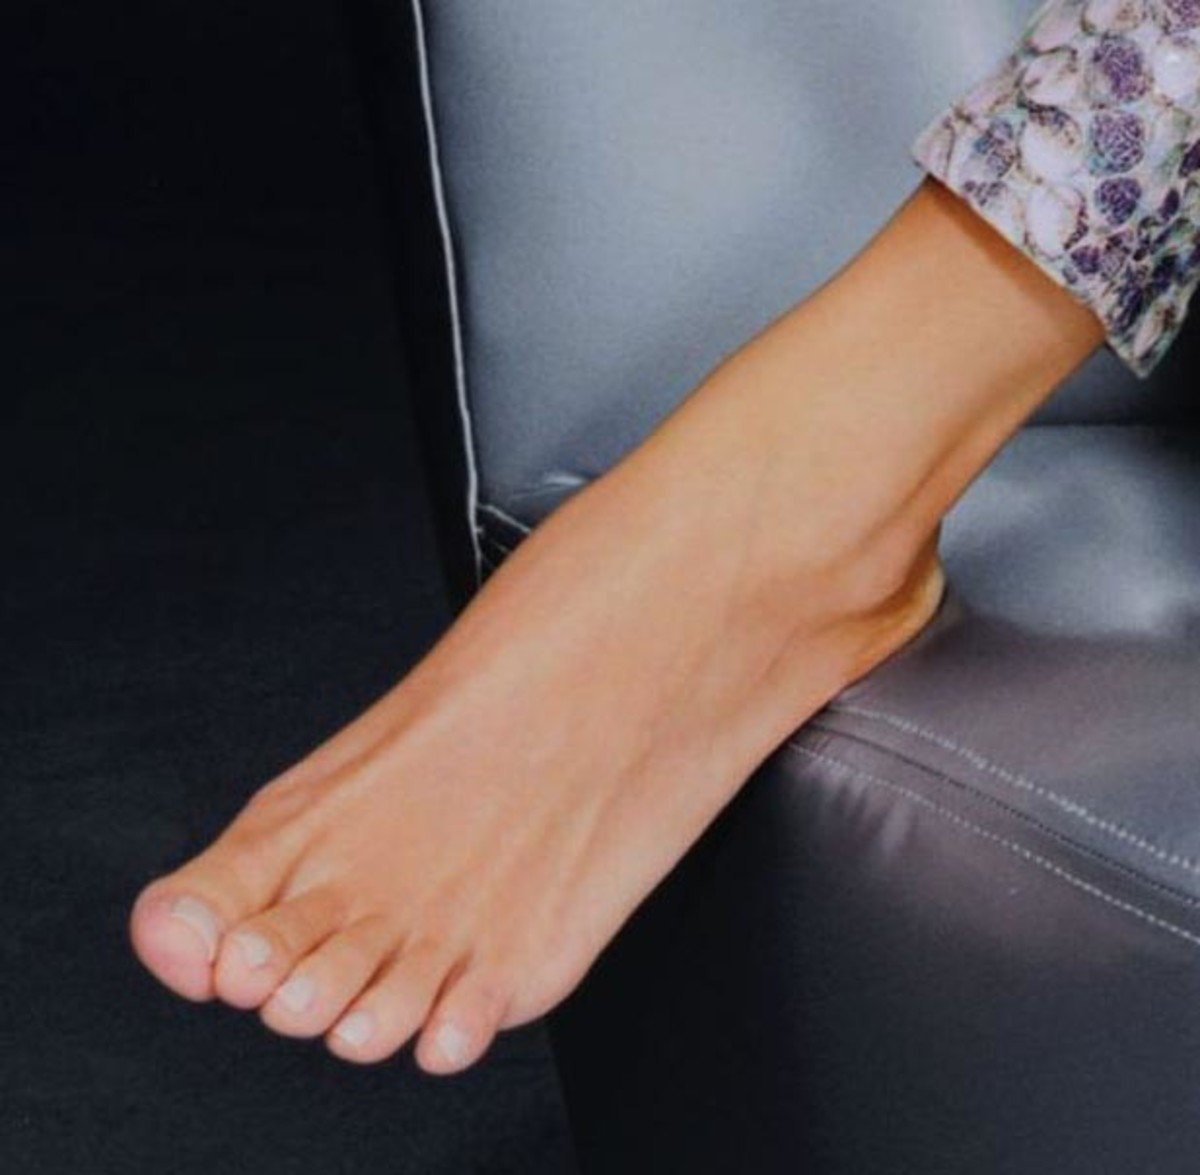 Celebrity Feet Photos Whose Famous Toes Are These Hubpages